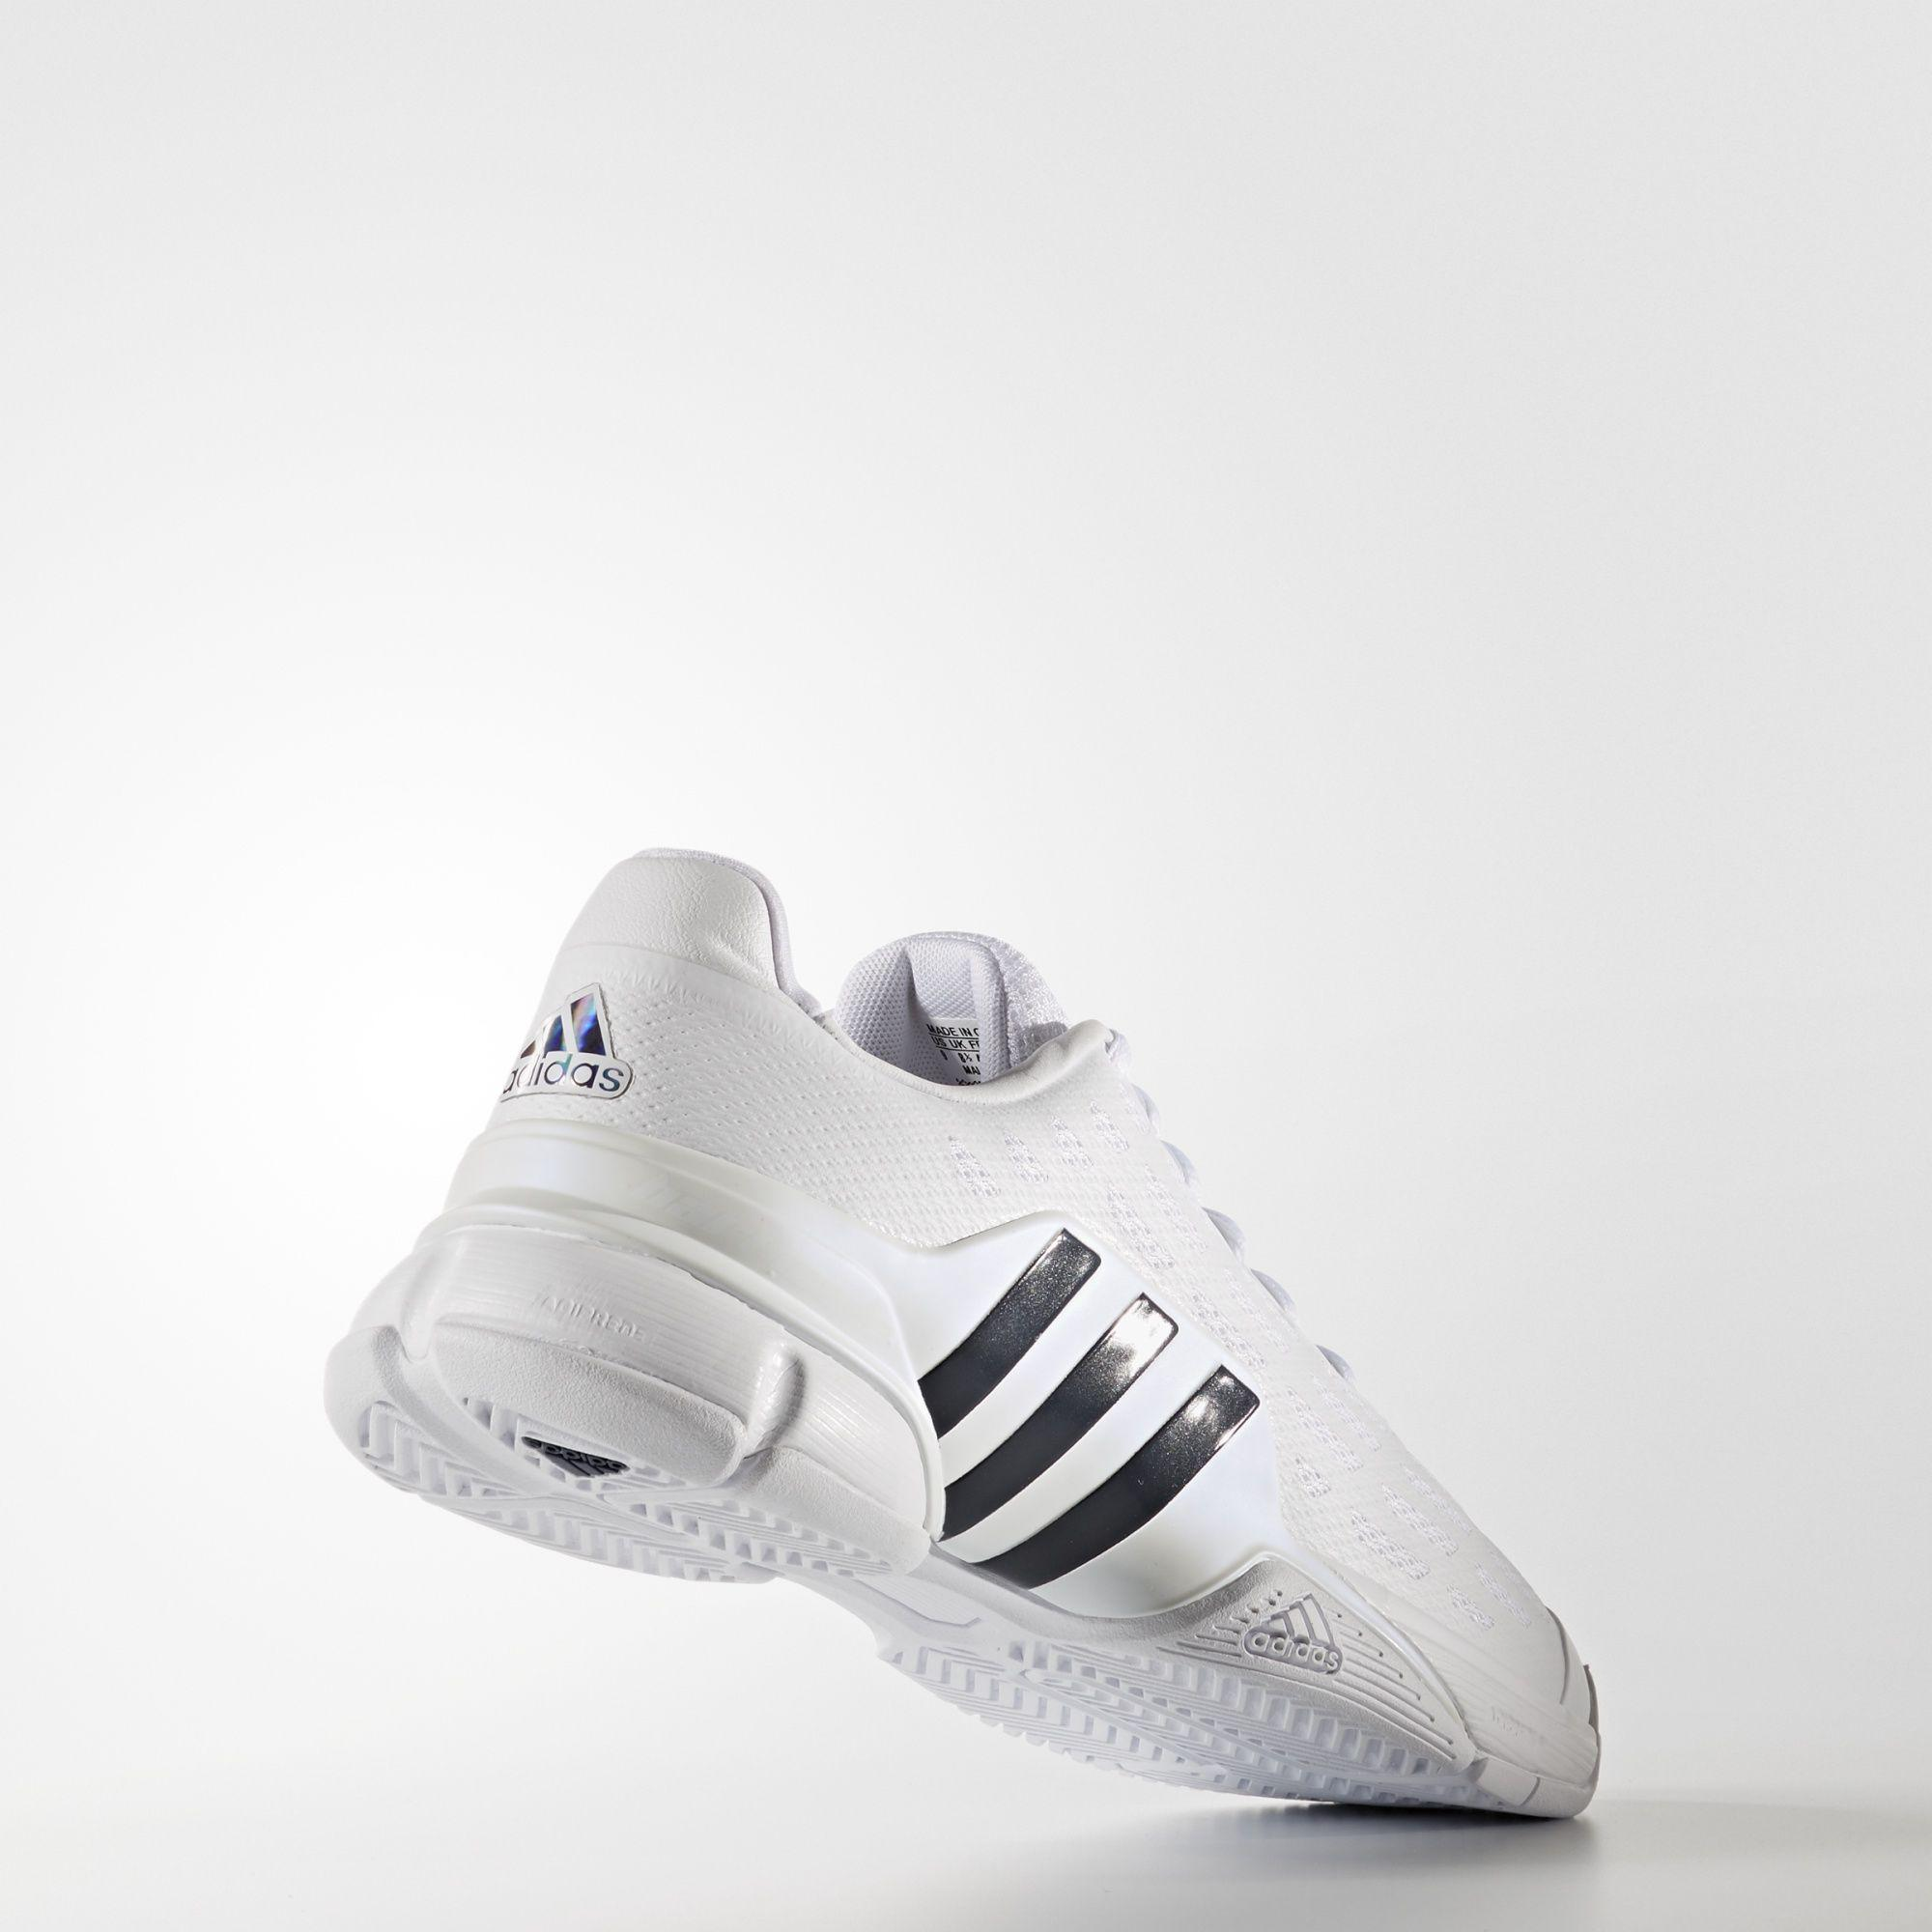 new product ec159 71641 Adidas Mens Barricade 2016 Tennis Shoes - White